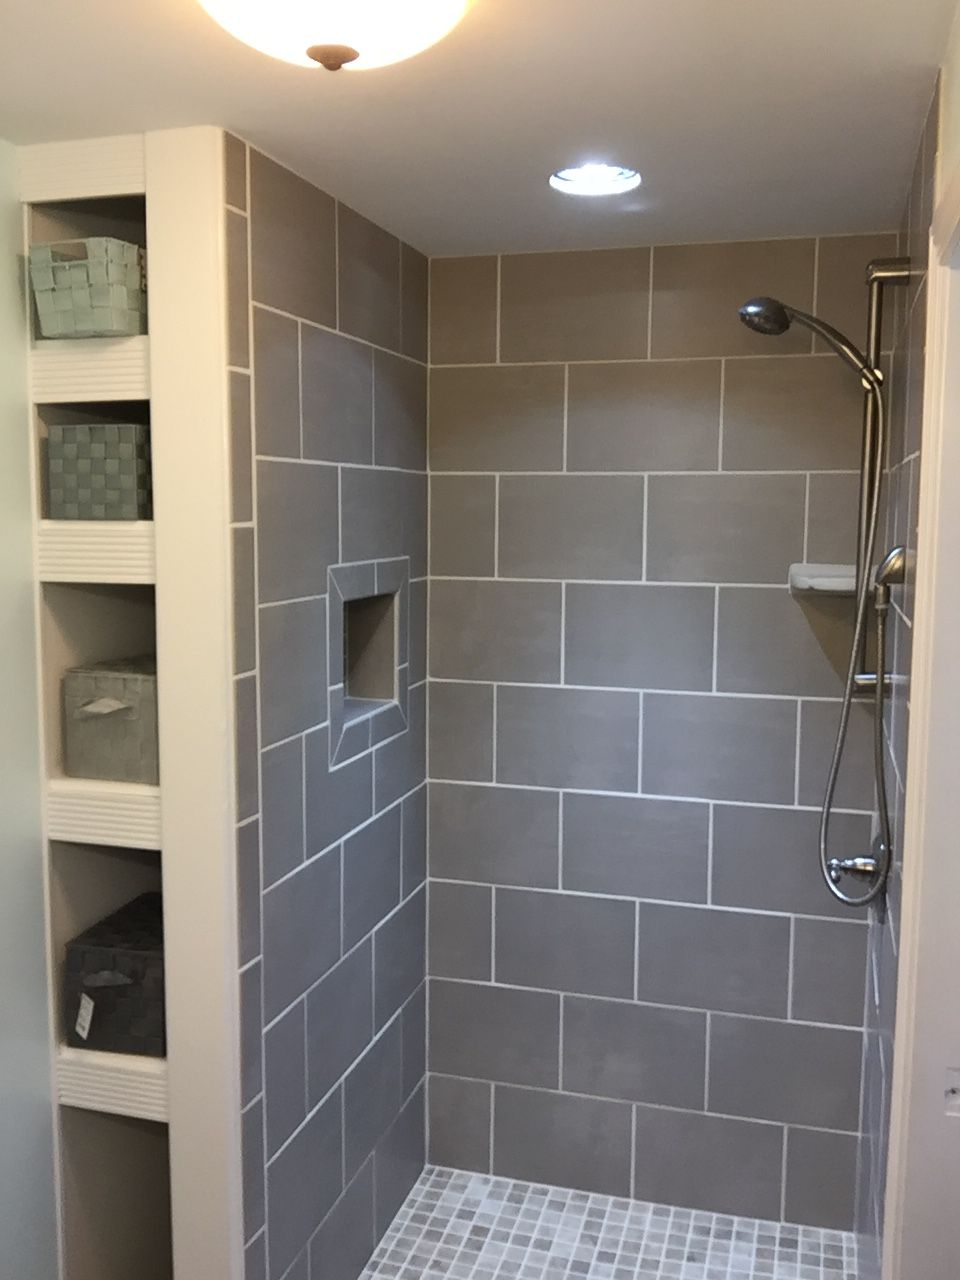 Pin By Diana On Showers Small Bathroom Makeover Small Bathroom Bathrooms Remodel